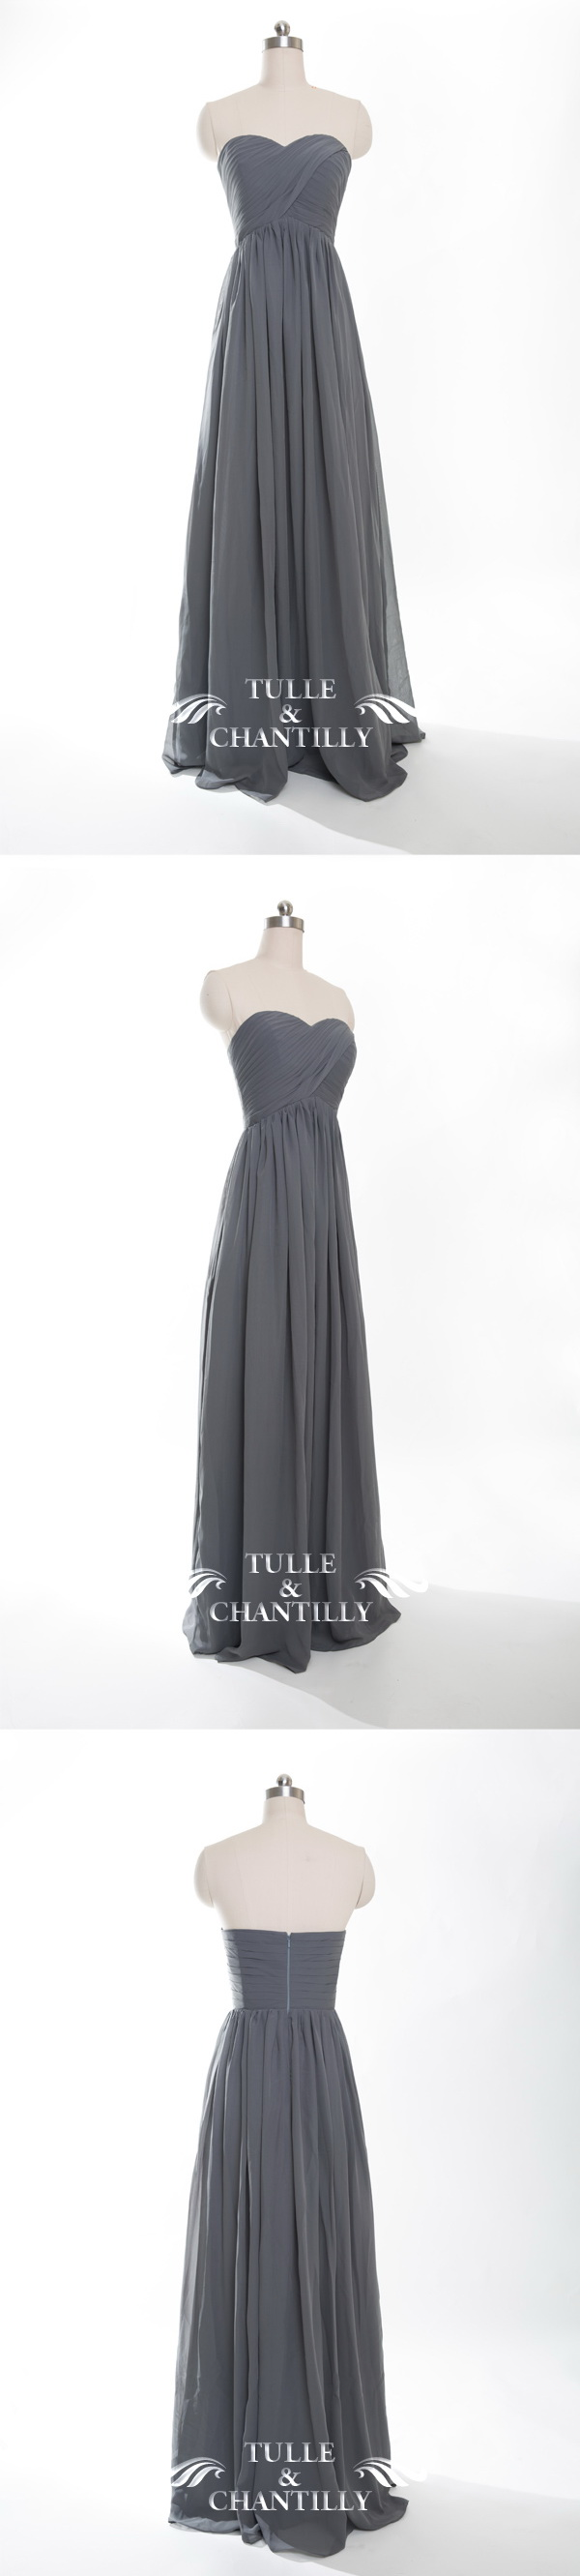 Full length sweetheart chiffon bridesmaid dress tbqp268 charcoal long chiffon charcoal grey bridesmaid dresses 2016 ombrellifo Image collections